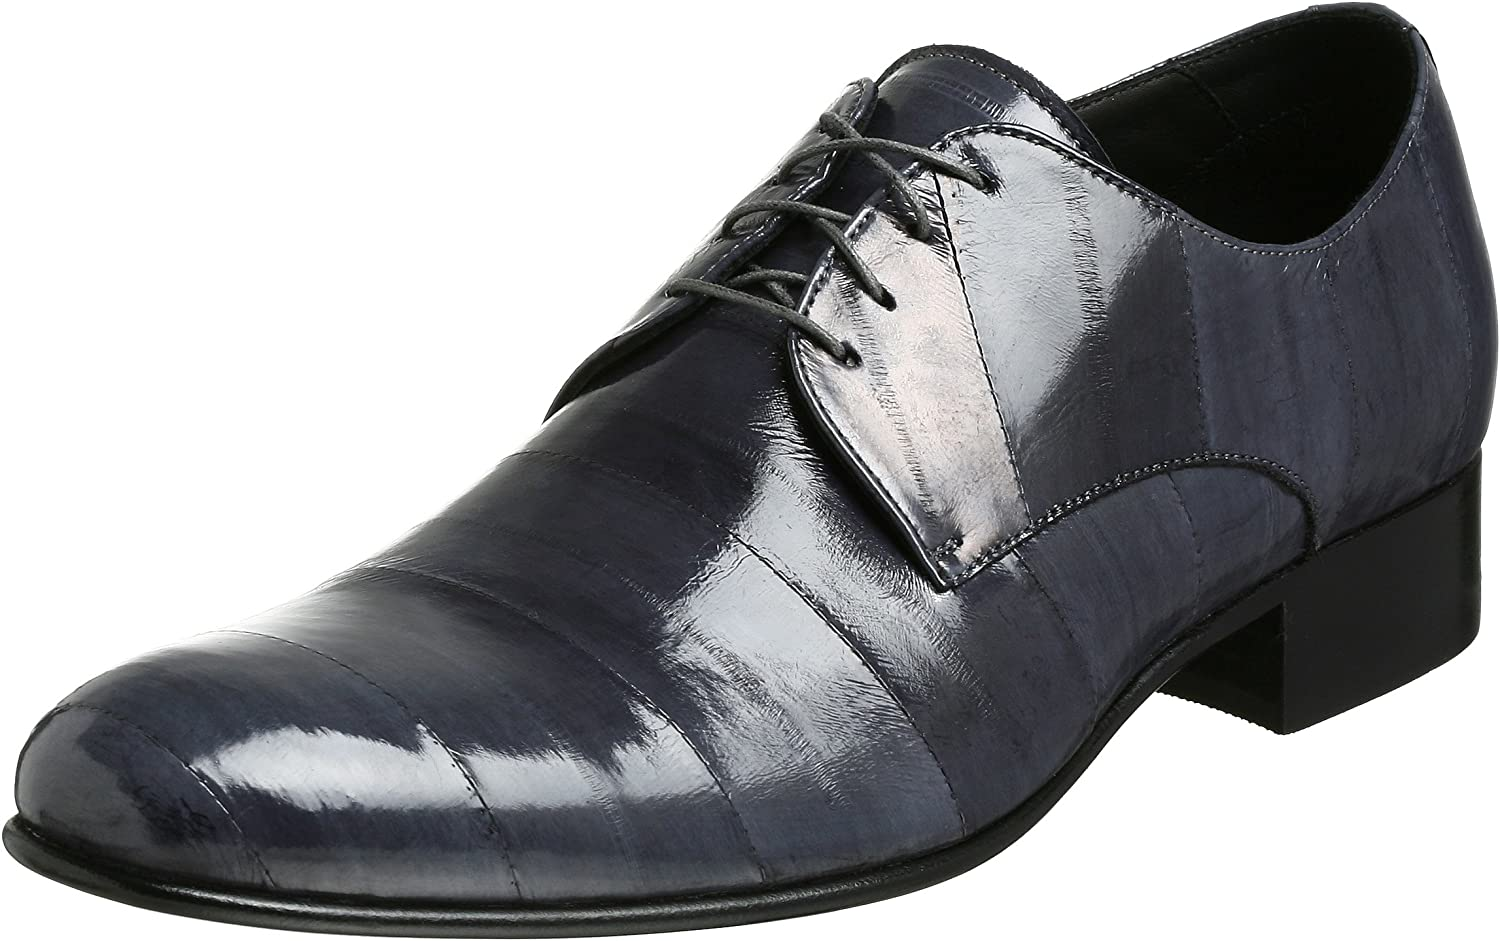 Kenneth Cole New York Men's Glam-Or-Eyes EEL Oxford